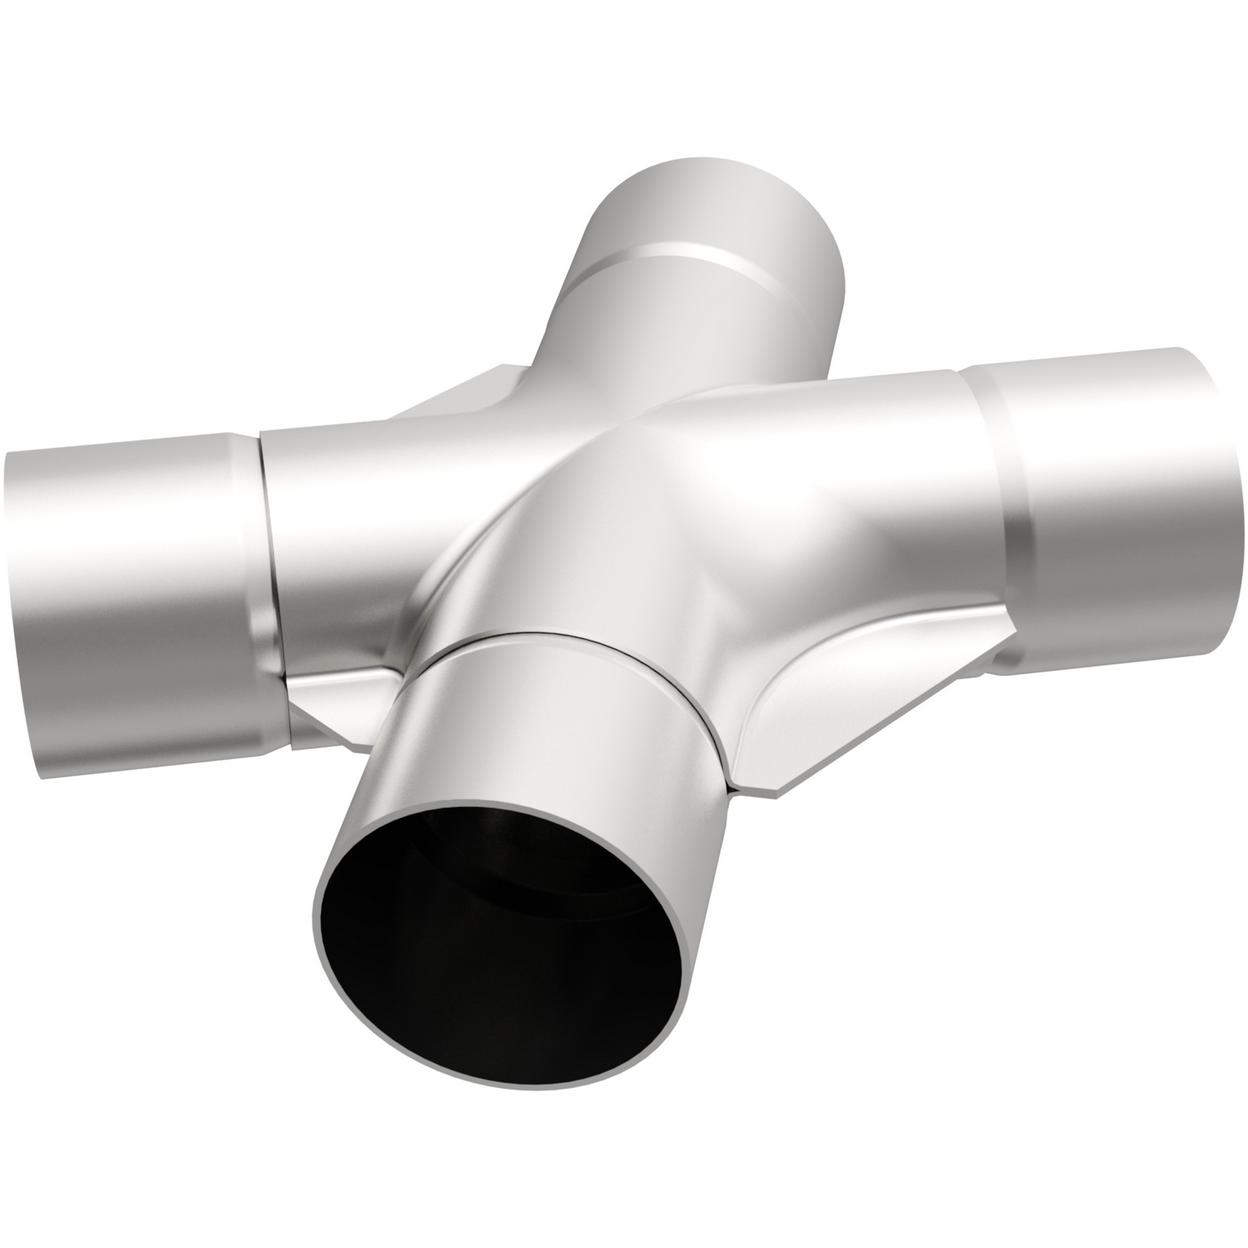 Exhaust X-Pipe - 2.50in.